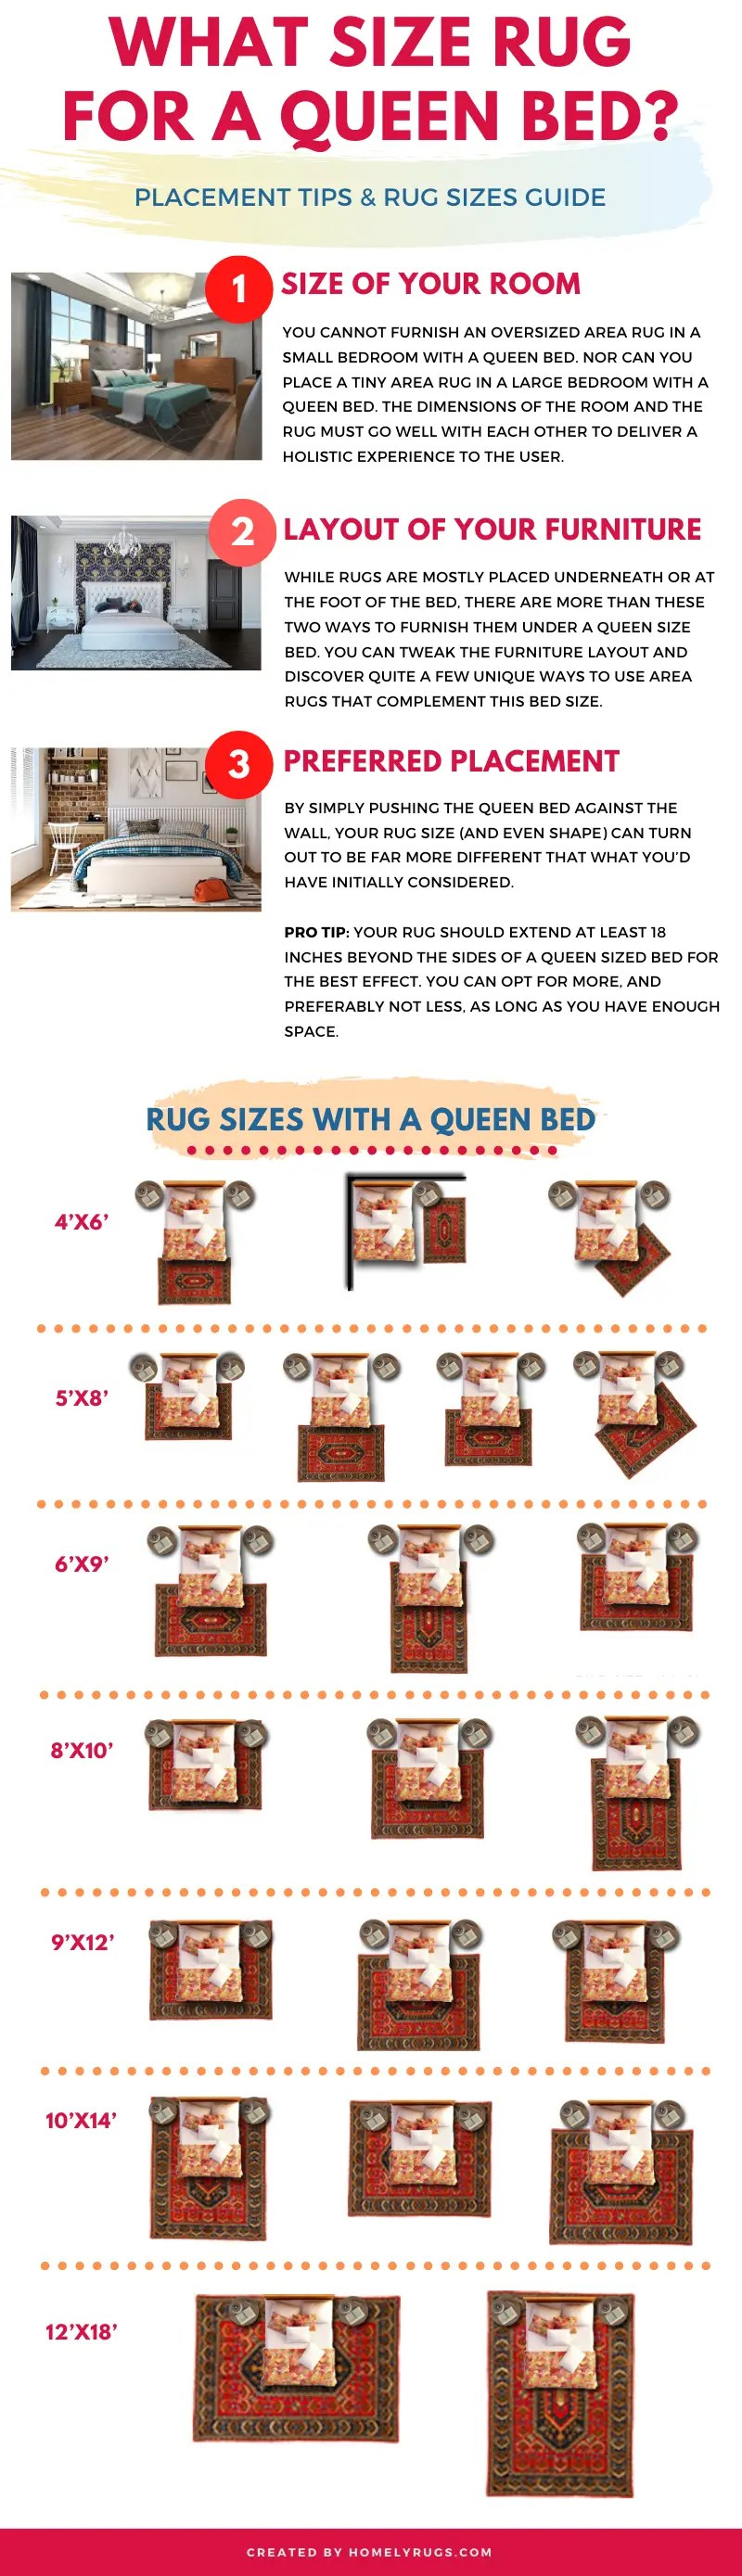 what size rug for a queen bed chart